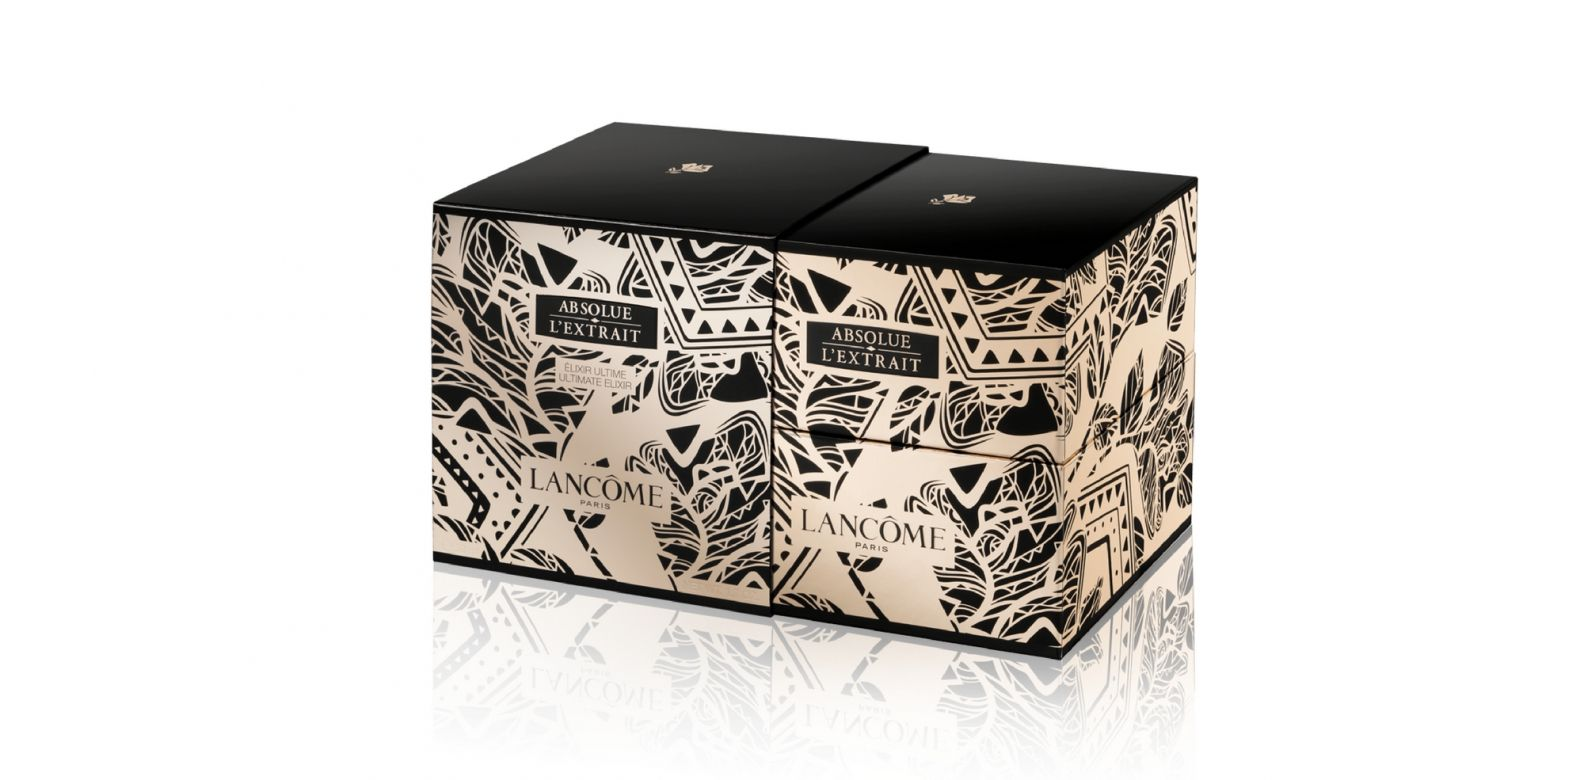 The limited edition packaging took inspirations from nature. (Photo: Courtesy of Lancôme)